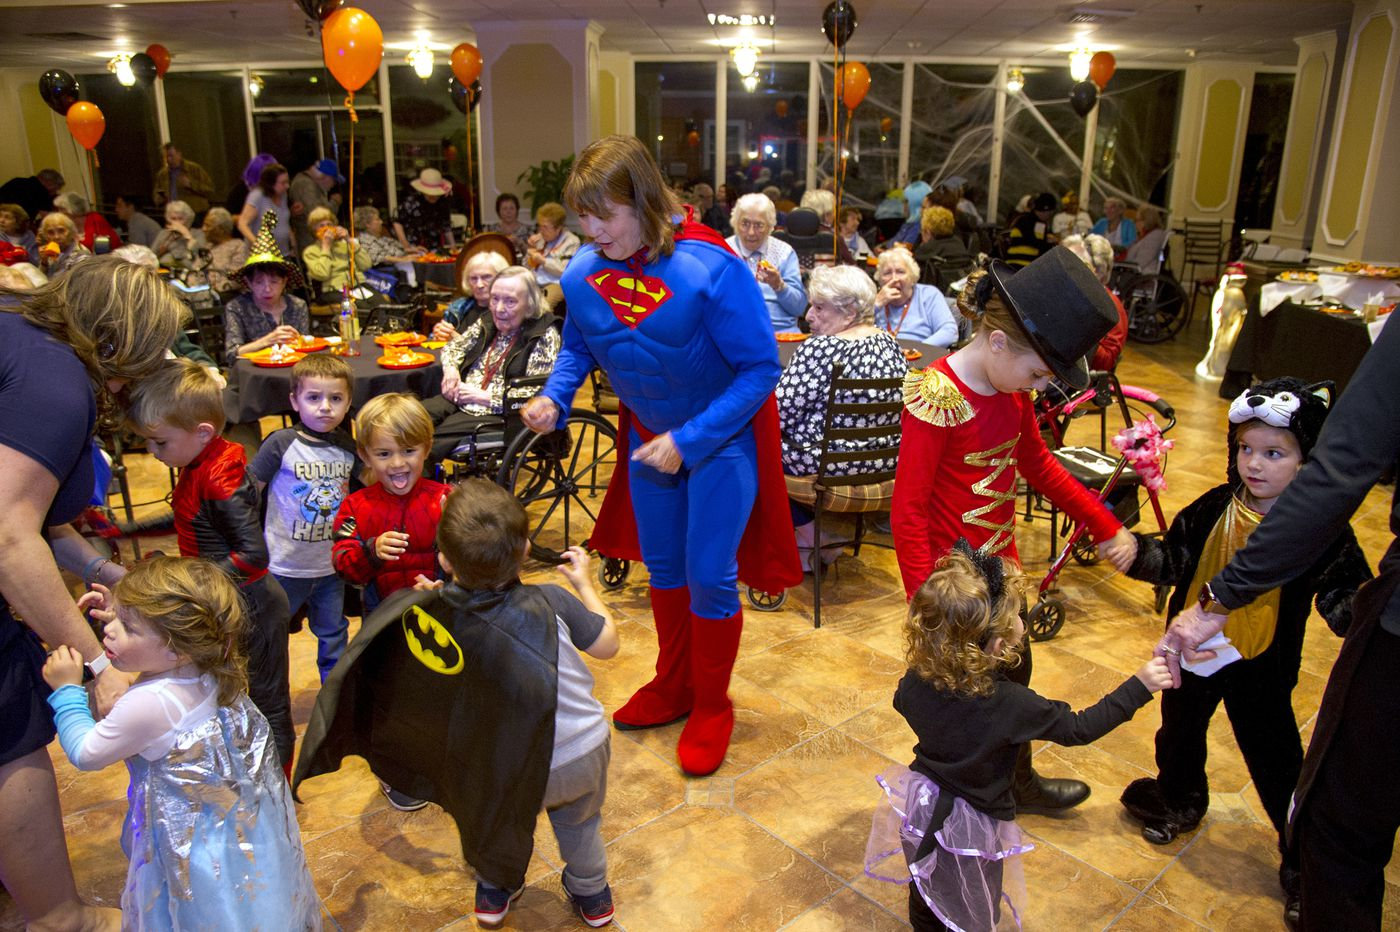 Halloween celebrated at Cherry Hill assisted living home